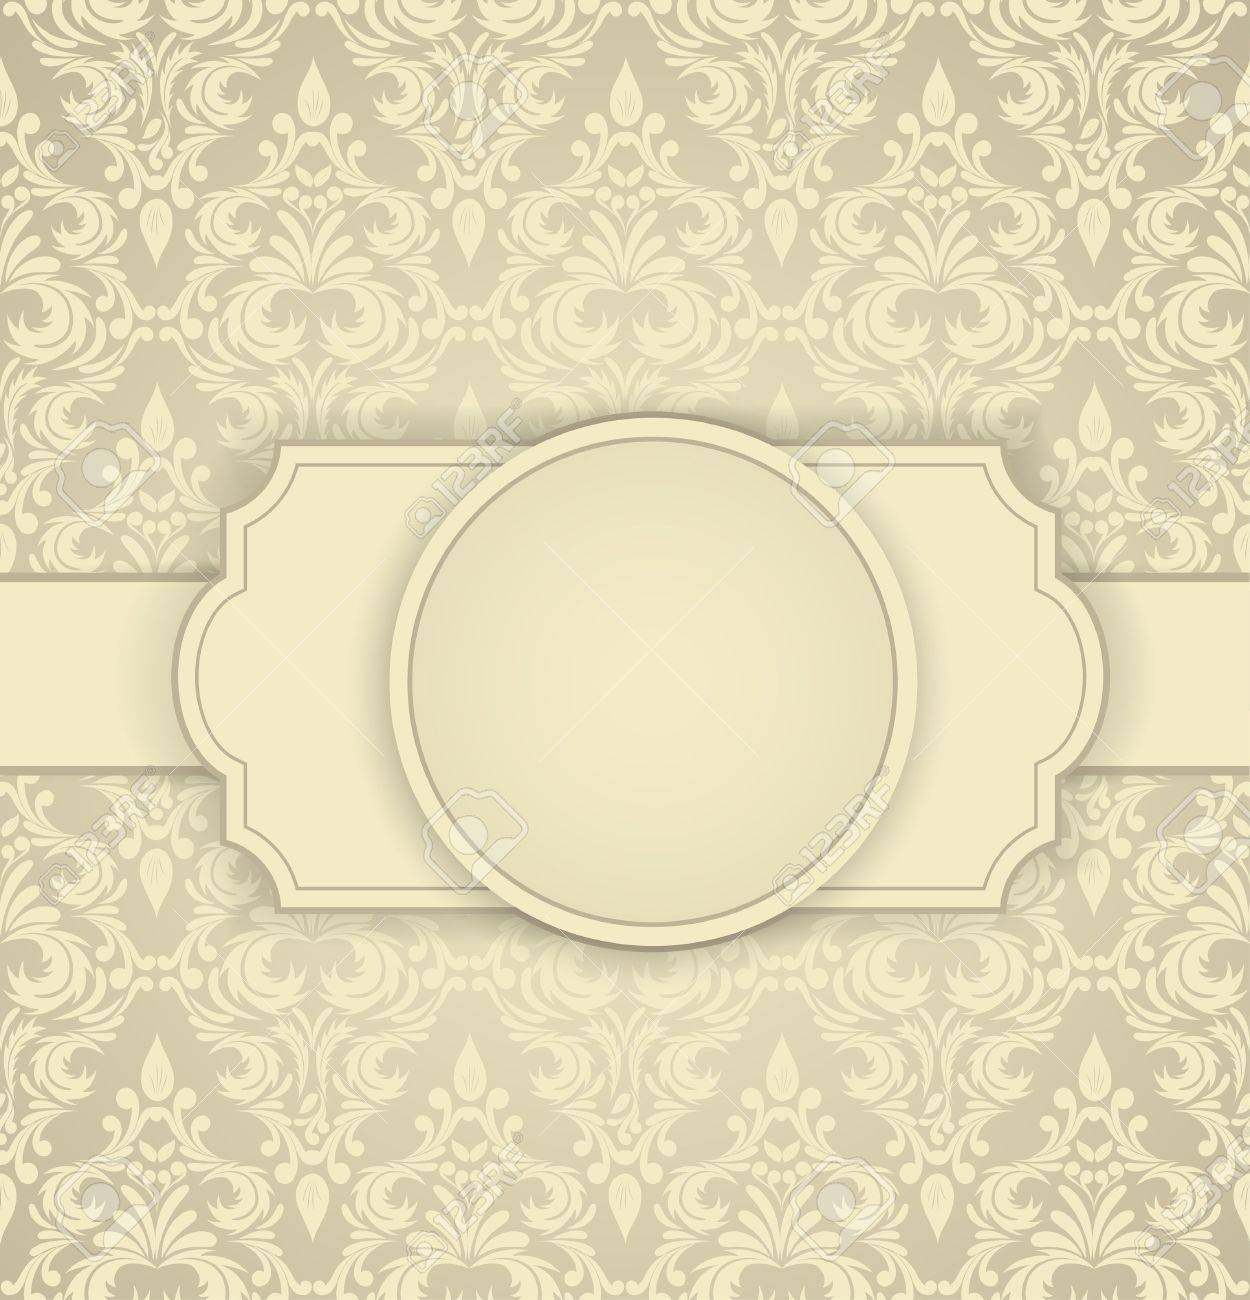 Invitation card with damask pattern and frame Stock Vector - 15813251